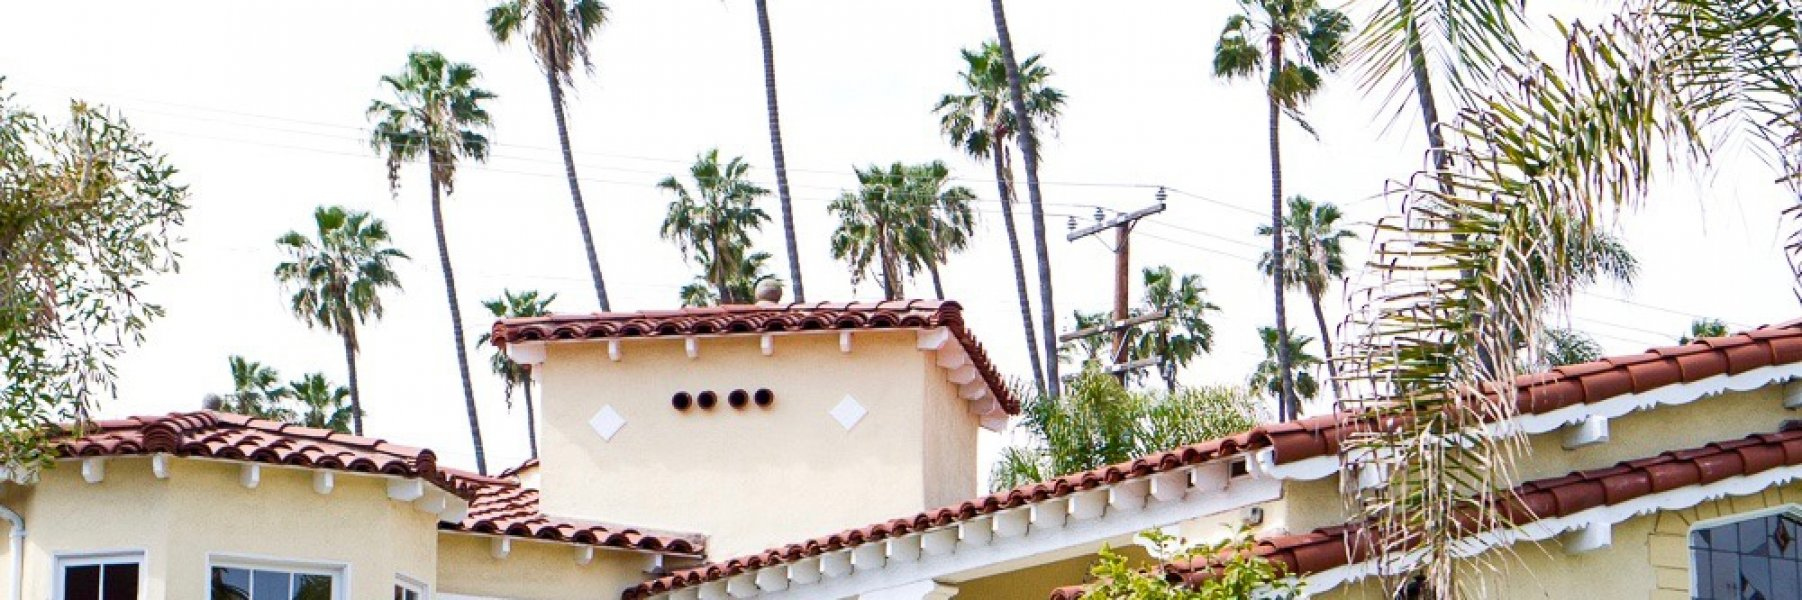 Belmont Heights is a community of homes in Long Beach California